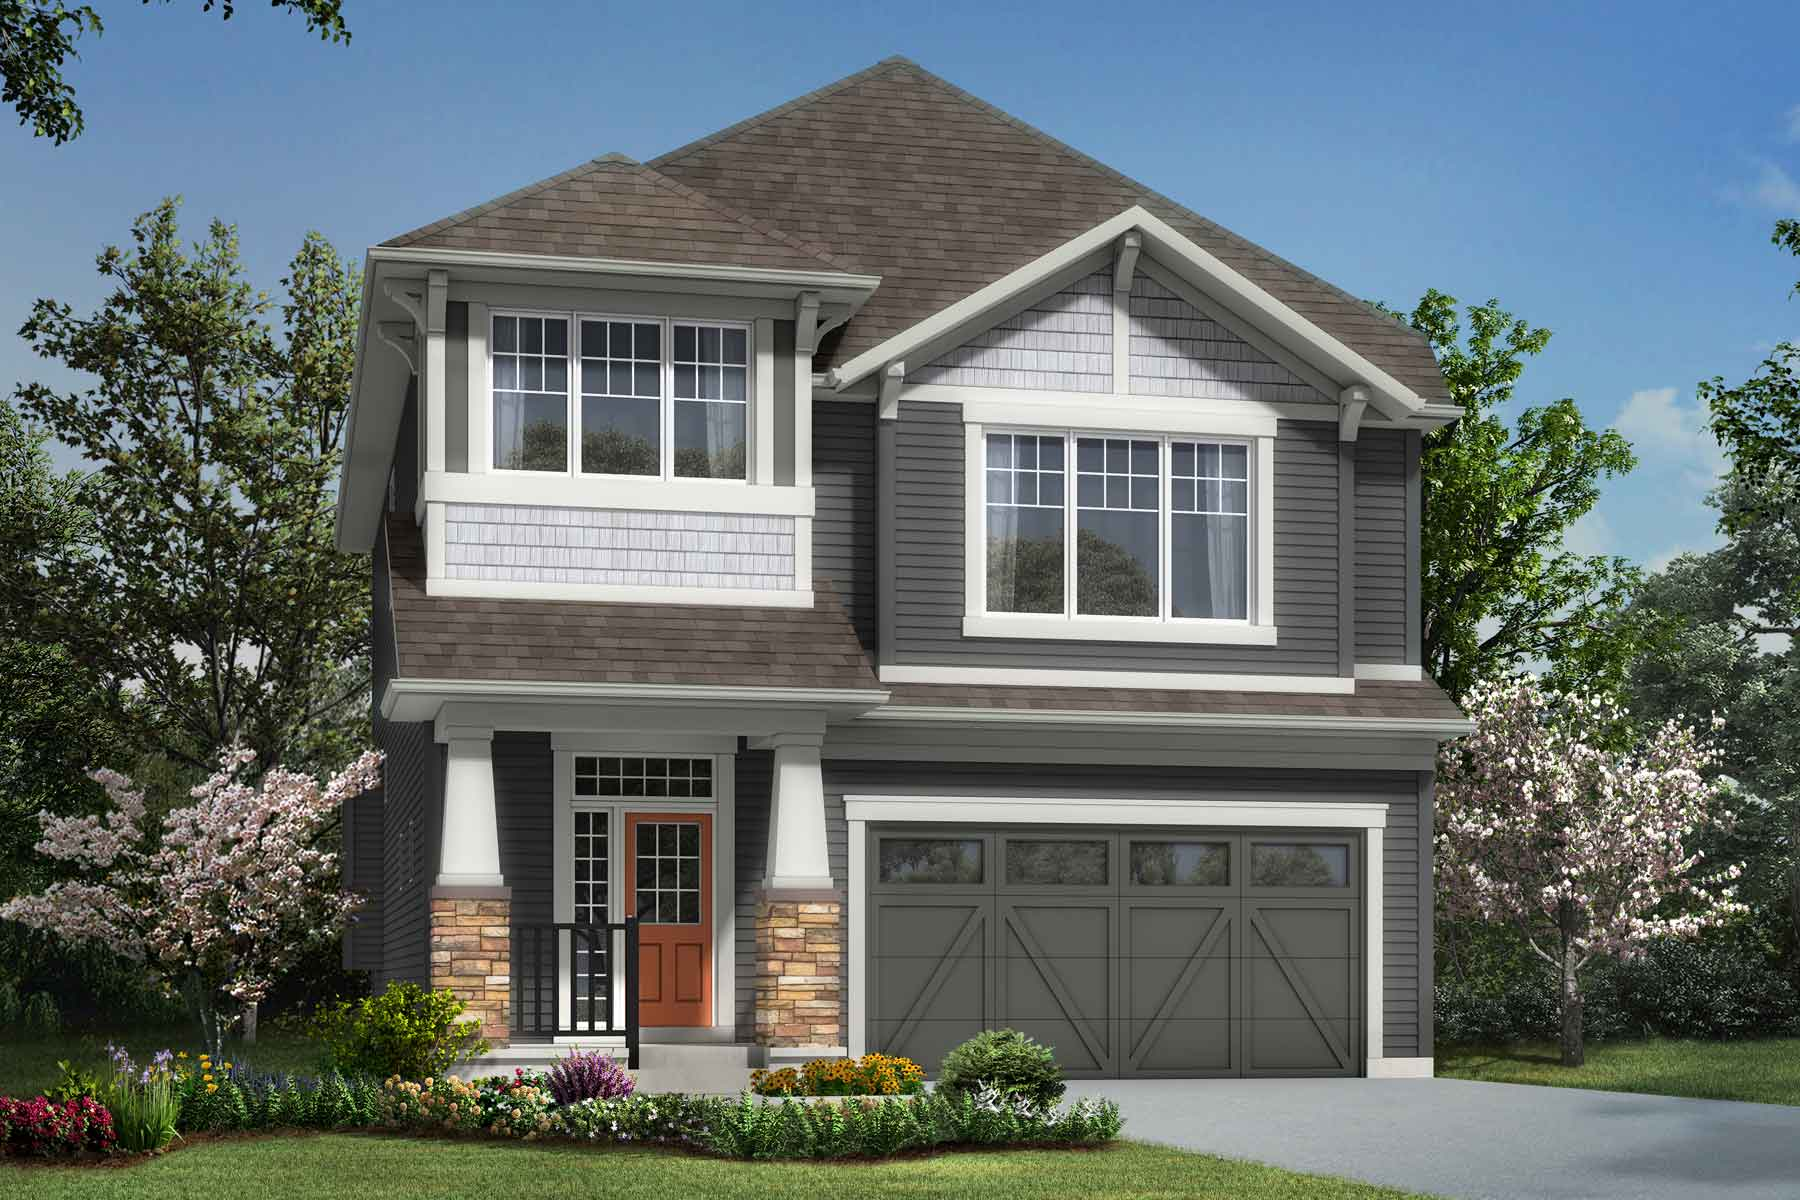 Bradford Plan elevationcraftsman_southwinds_bradford at Southwinds in Airdrie Alberta by Mattamy Homes